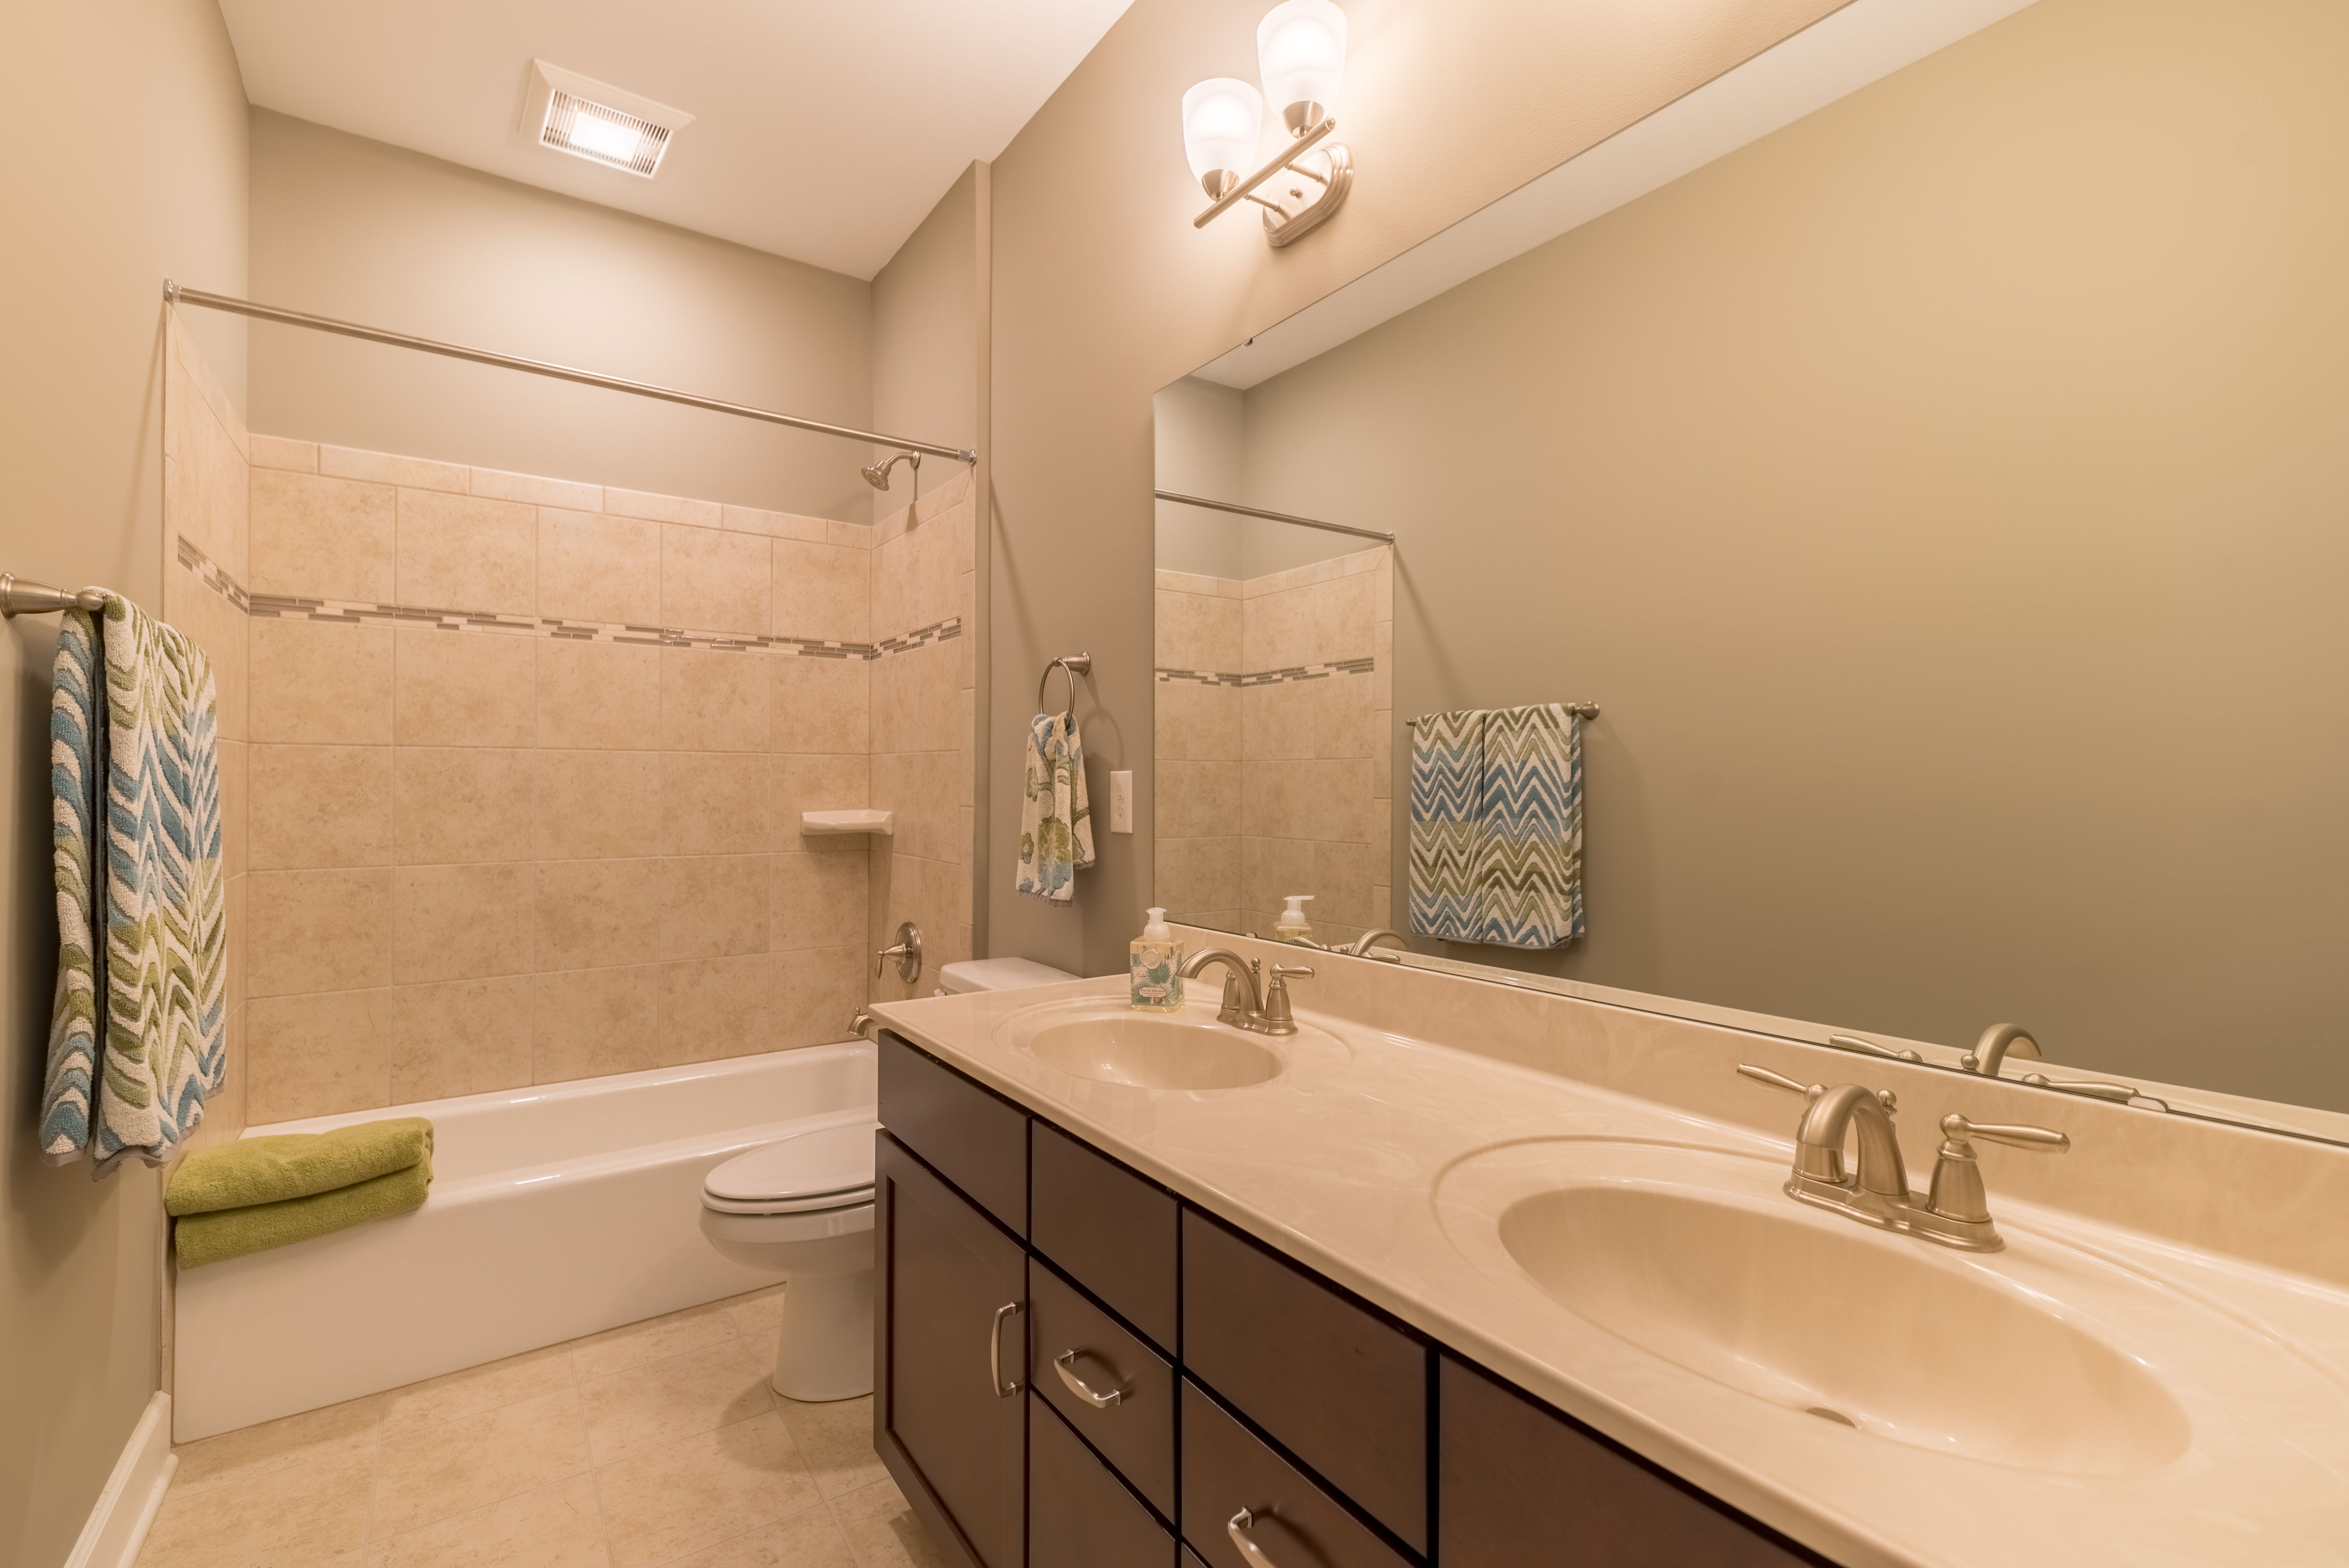 Bathroom featured in The Ashland By Stateson Homes in Blacksburg, VA